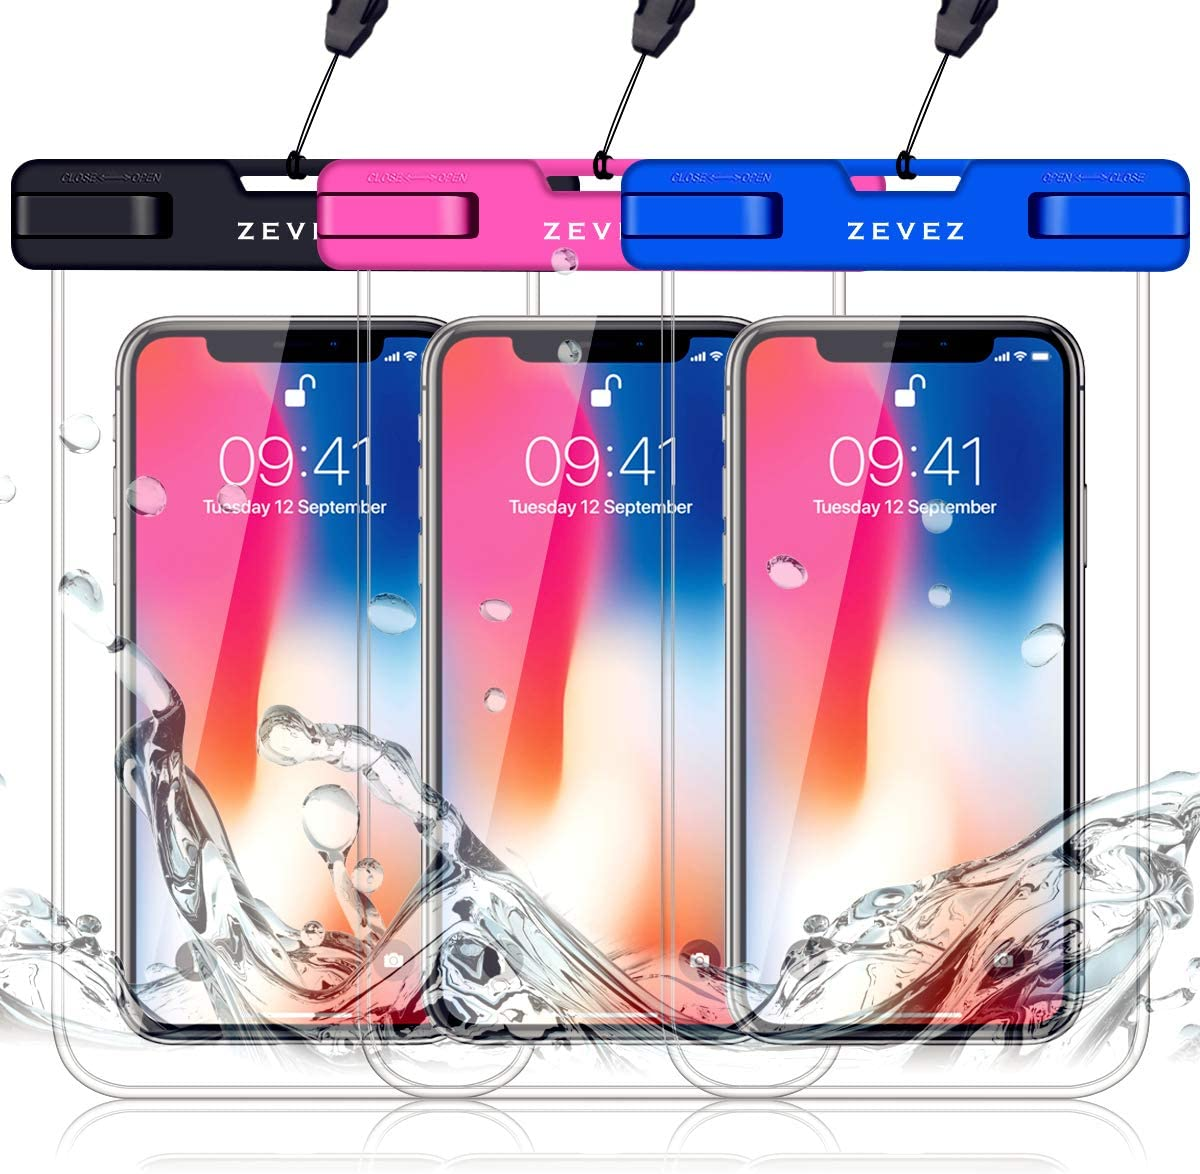 3 Pack Universal Waterproof Phone Pouch, Dry Bag for Cell Phone - Summer Water Sports and Dive for iPhone Xs Max XR X 8 7 6S Plus, Galaxy S10 Plus S10e S9, Pixel 3 2 XL HTC LG Sony Moto Up to 7